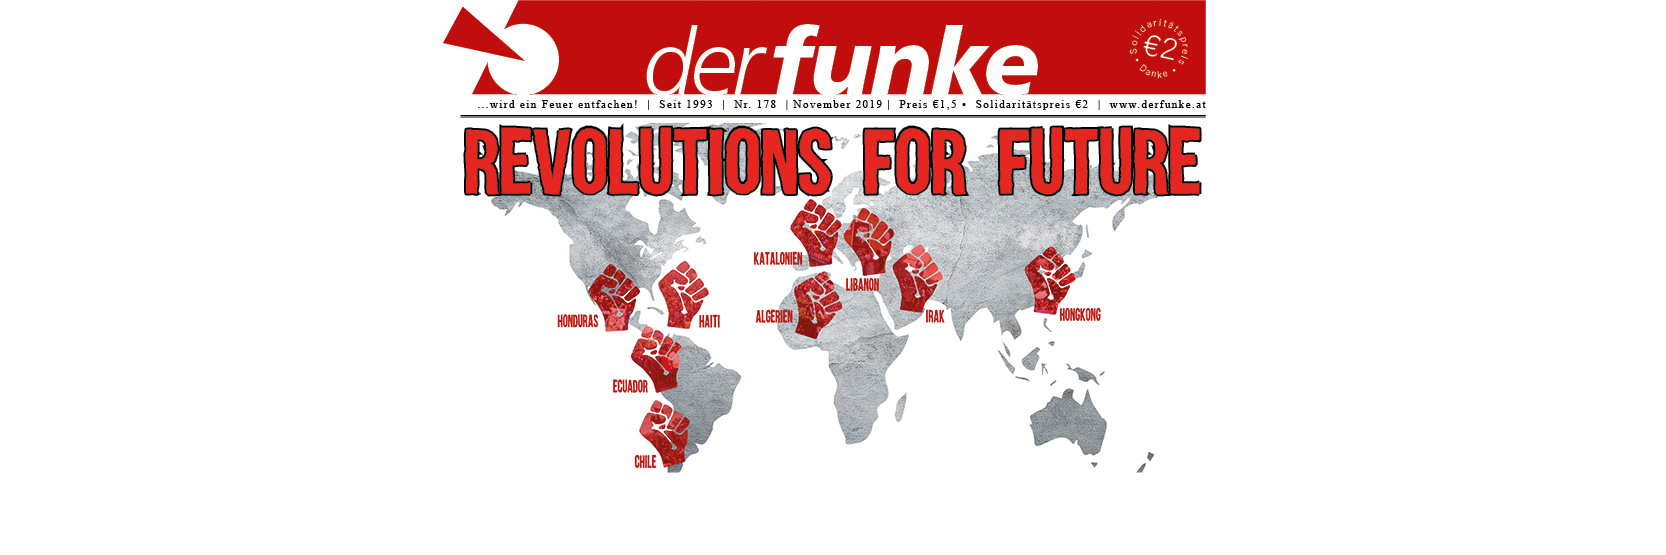 Revolutions for Future (Funke Nr. 178)